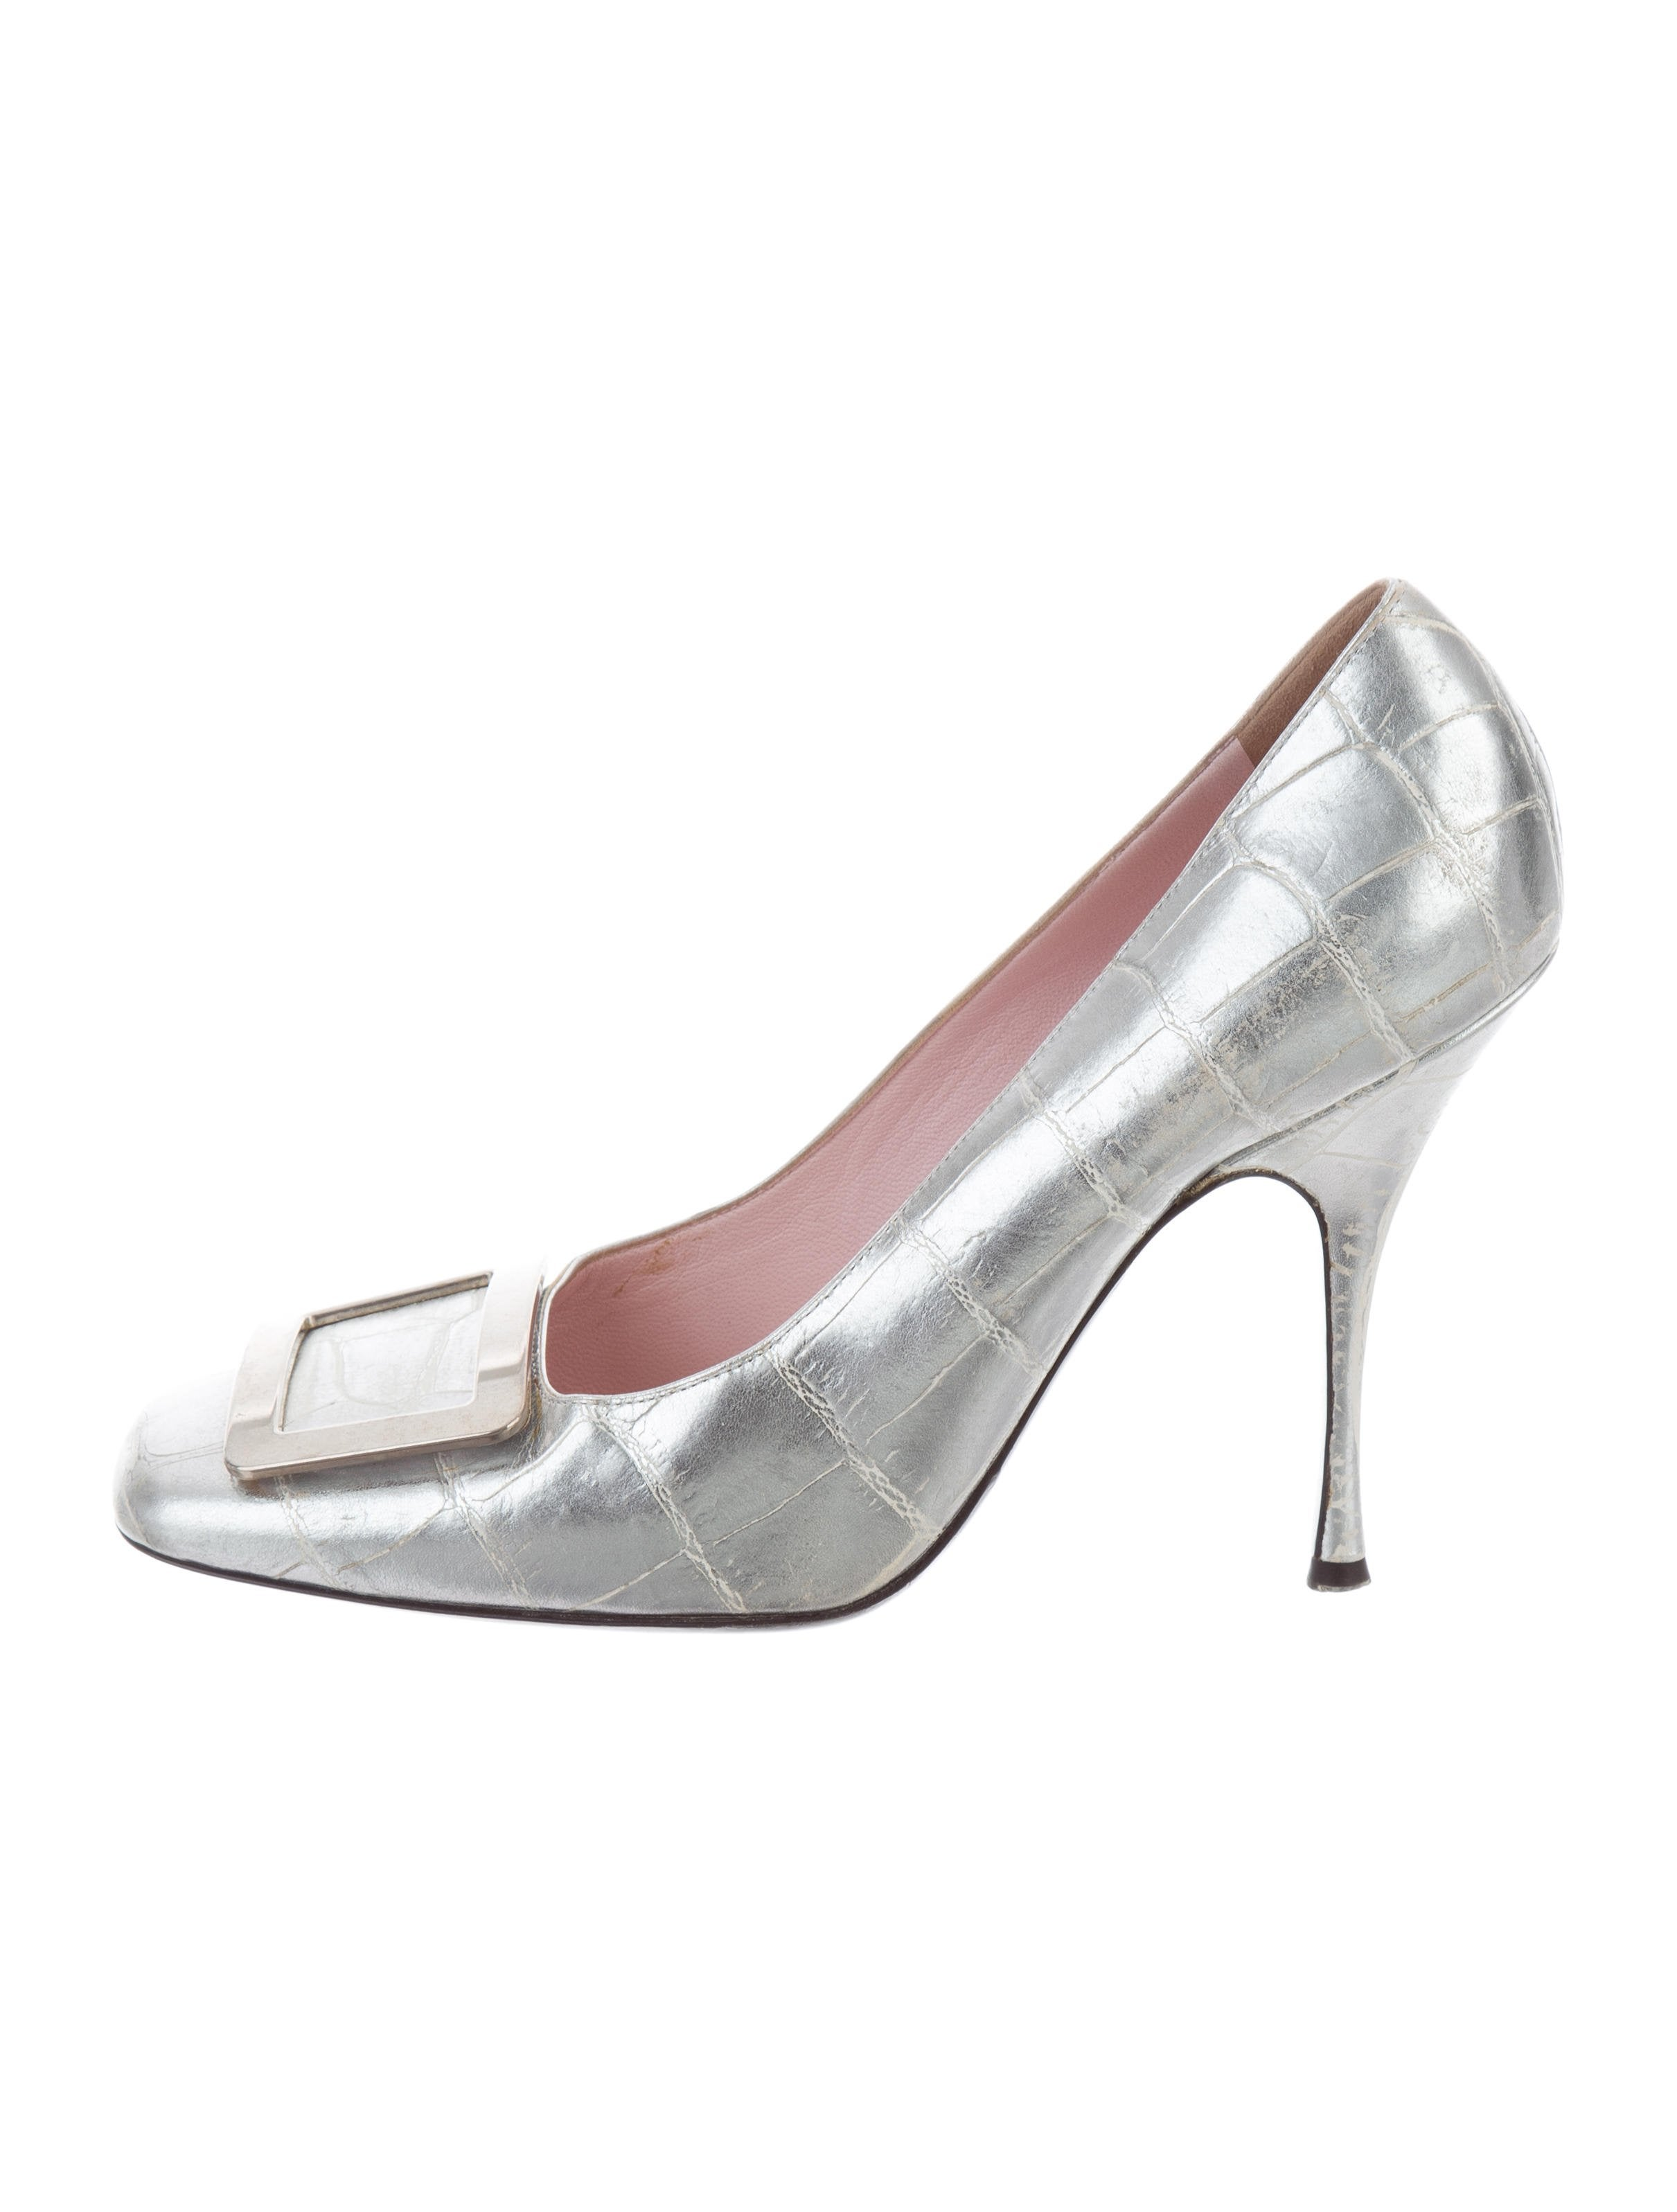 Céline Metallic Leather Heels qykPrSrEht